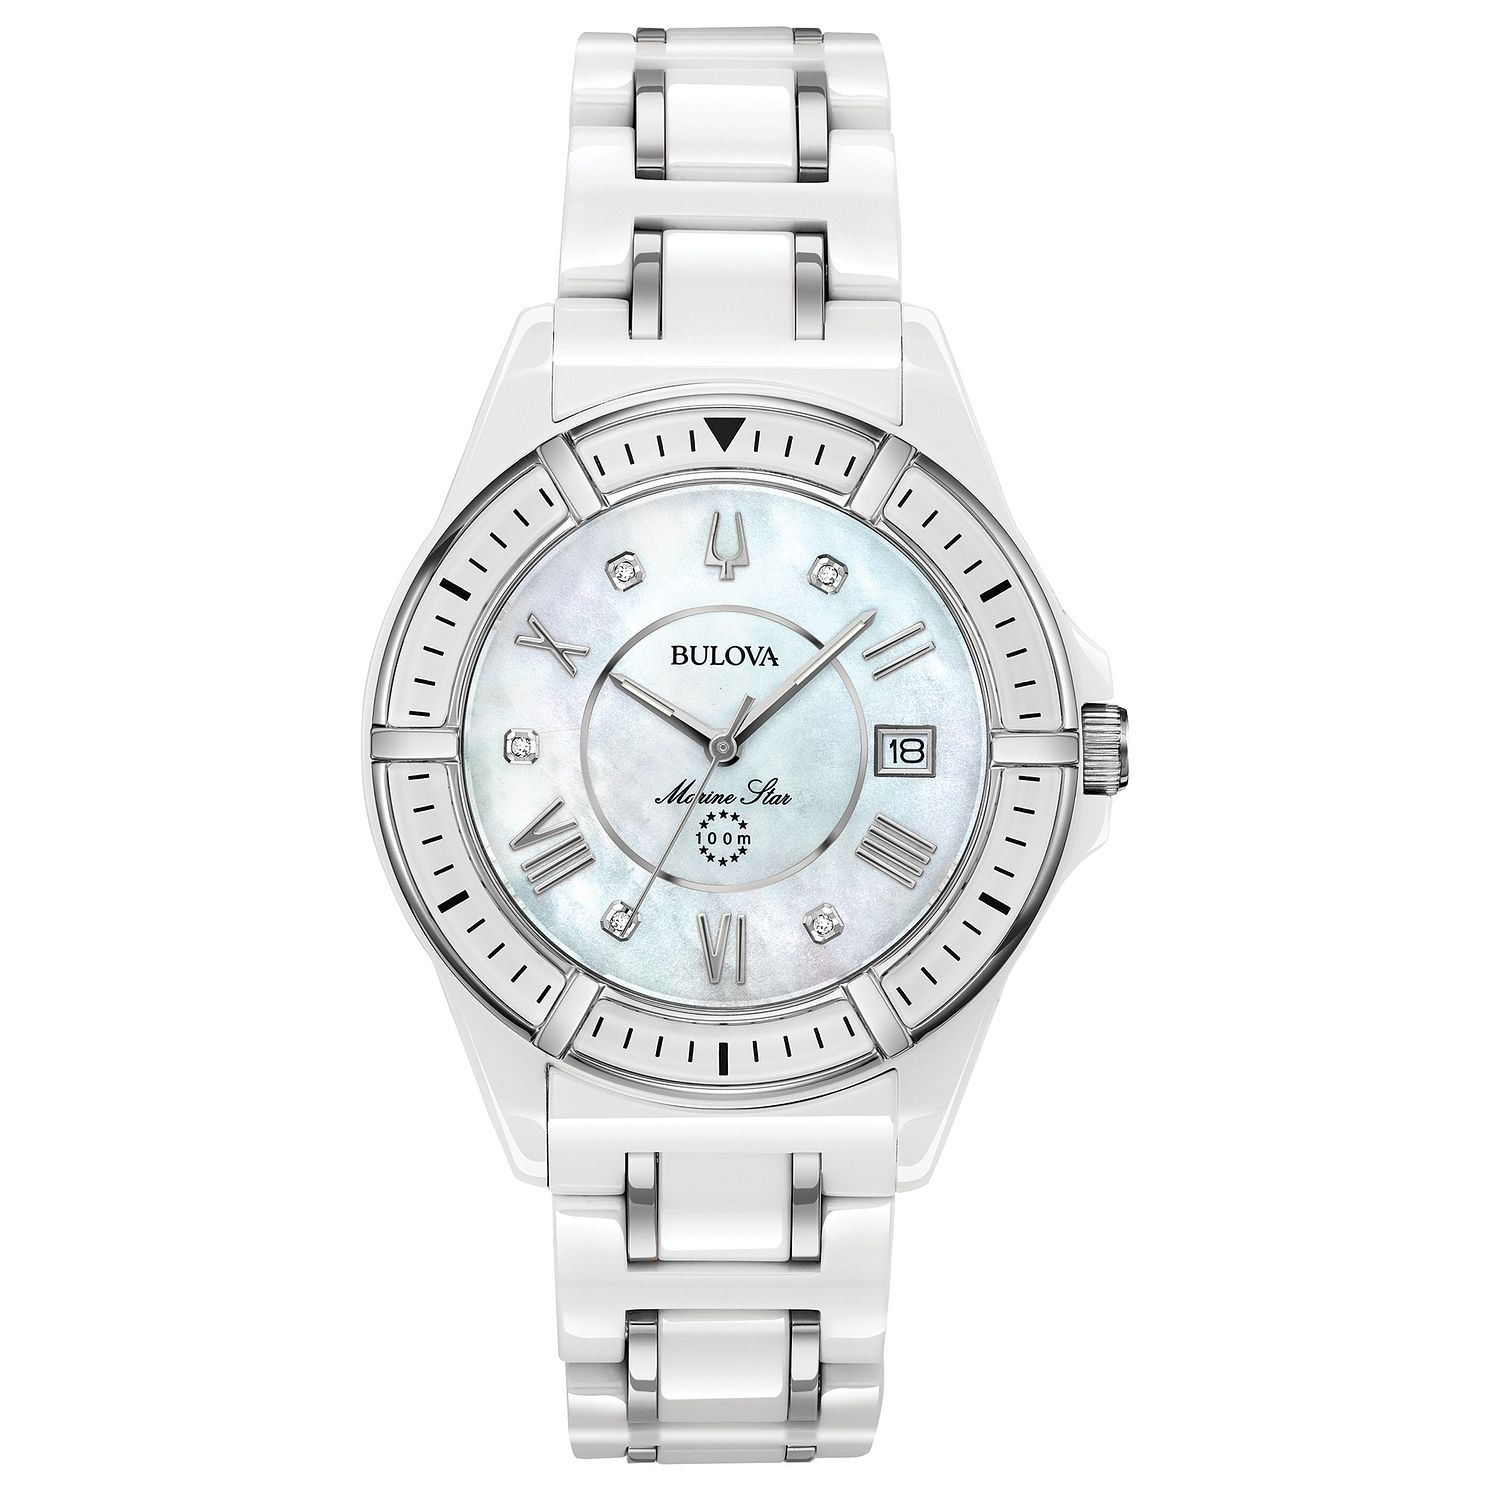 Bulova Marine Star Ladies' White Ceramic Bracelet Watch - Product number 3411028